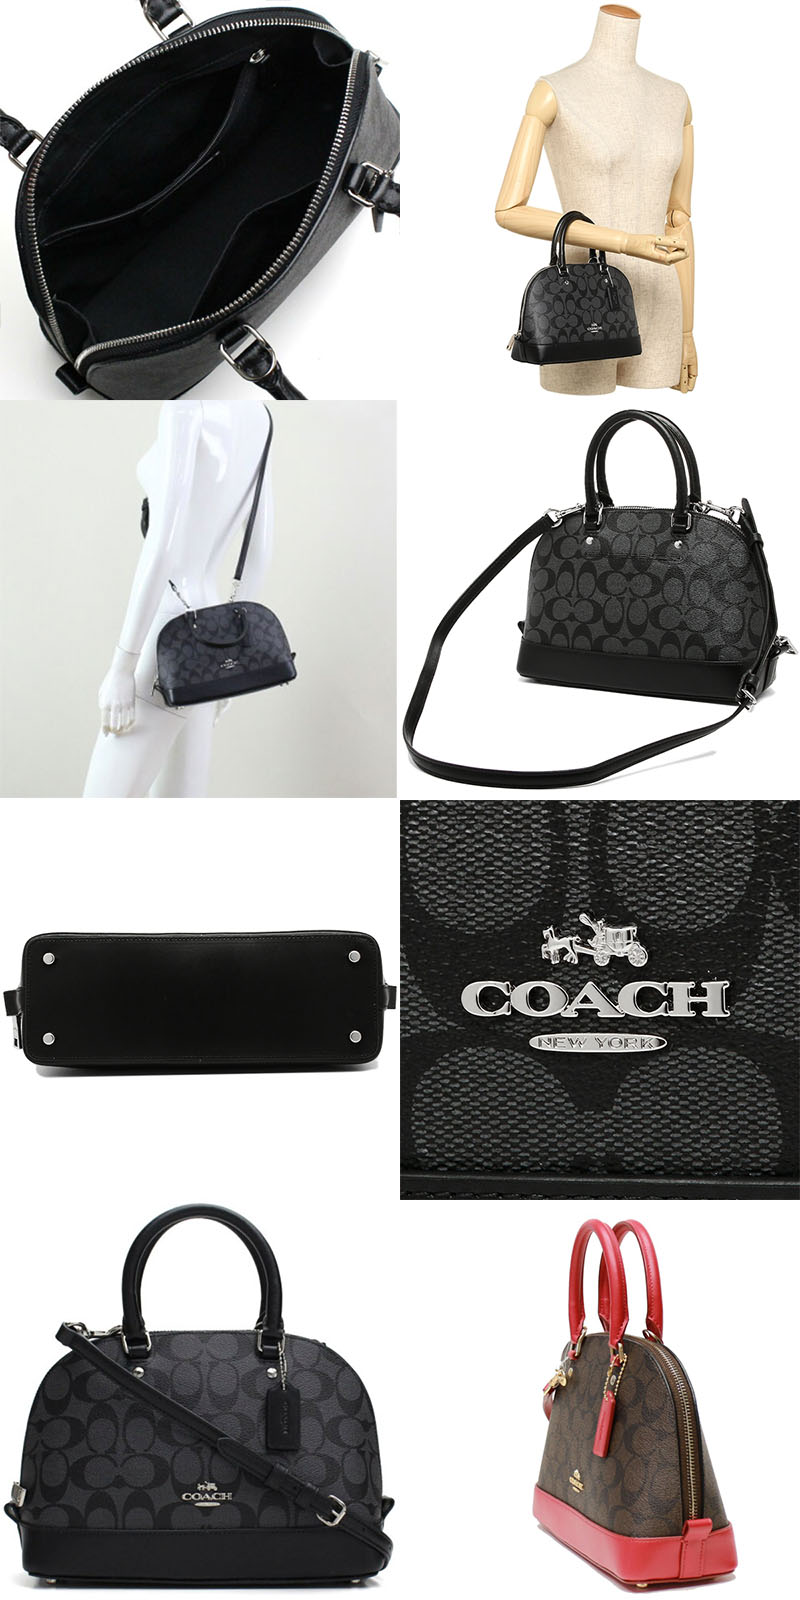 ad2d2536c2be Coach outlet bags do not have dust bag or paper bag. Tag and care cards are  included. Outlet items might not be 100% perfect in condition.